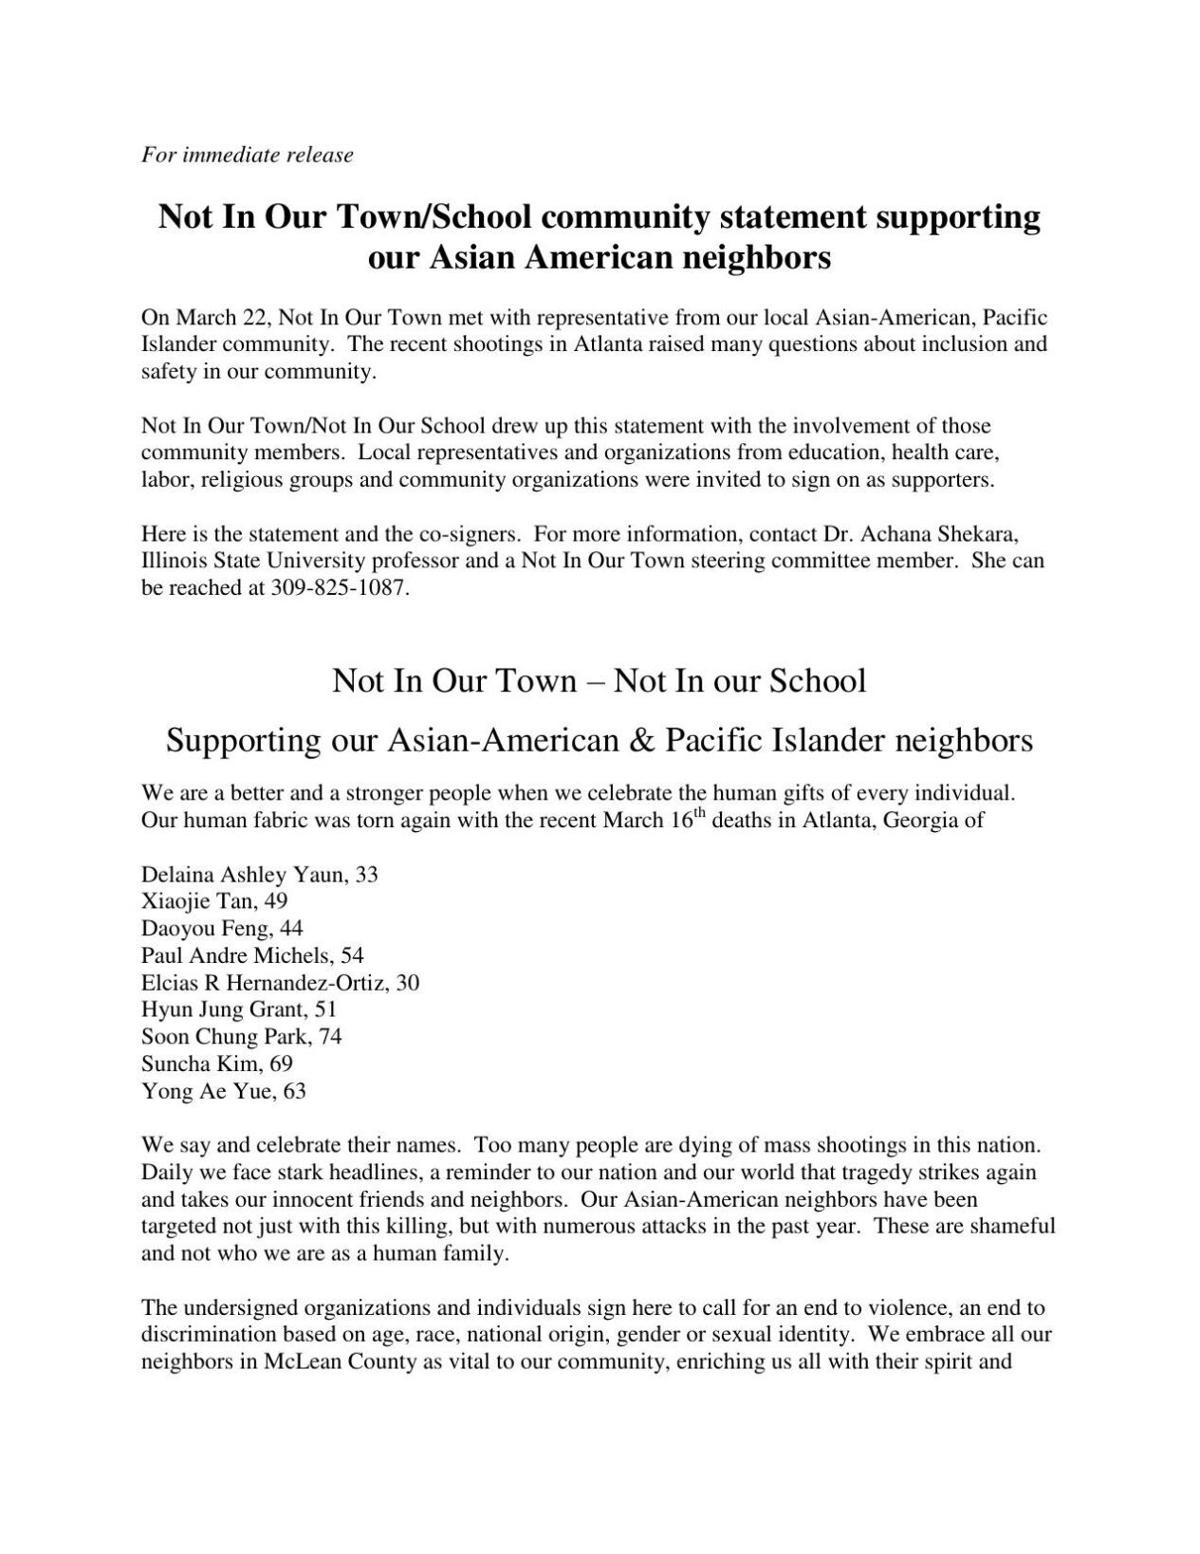 NIOT, NIOS statement in support of AAPI community